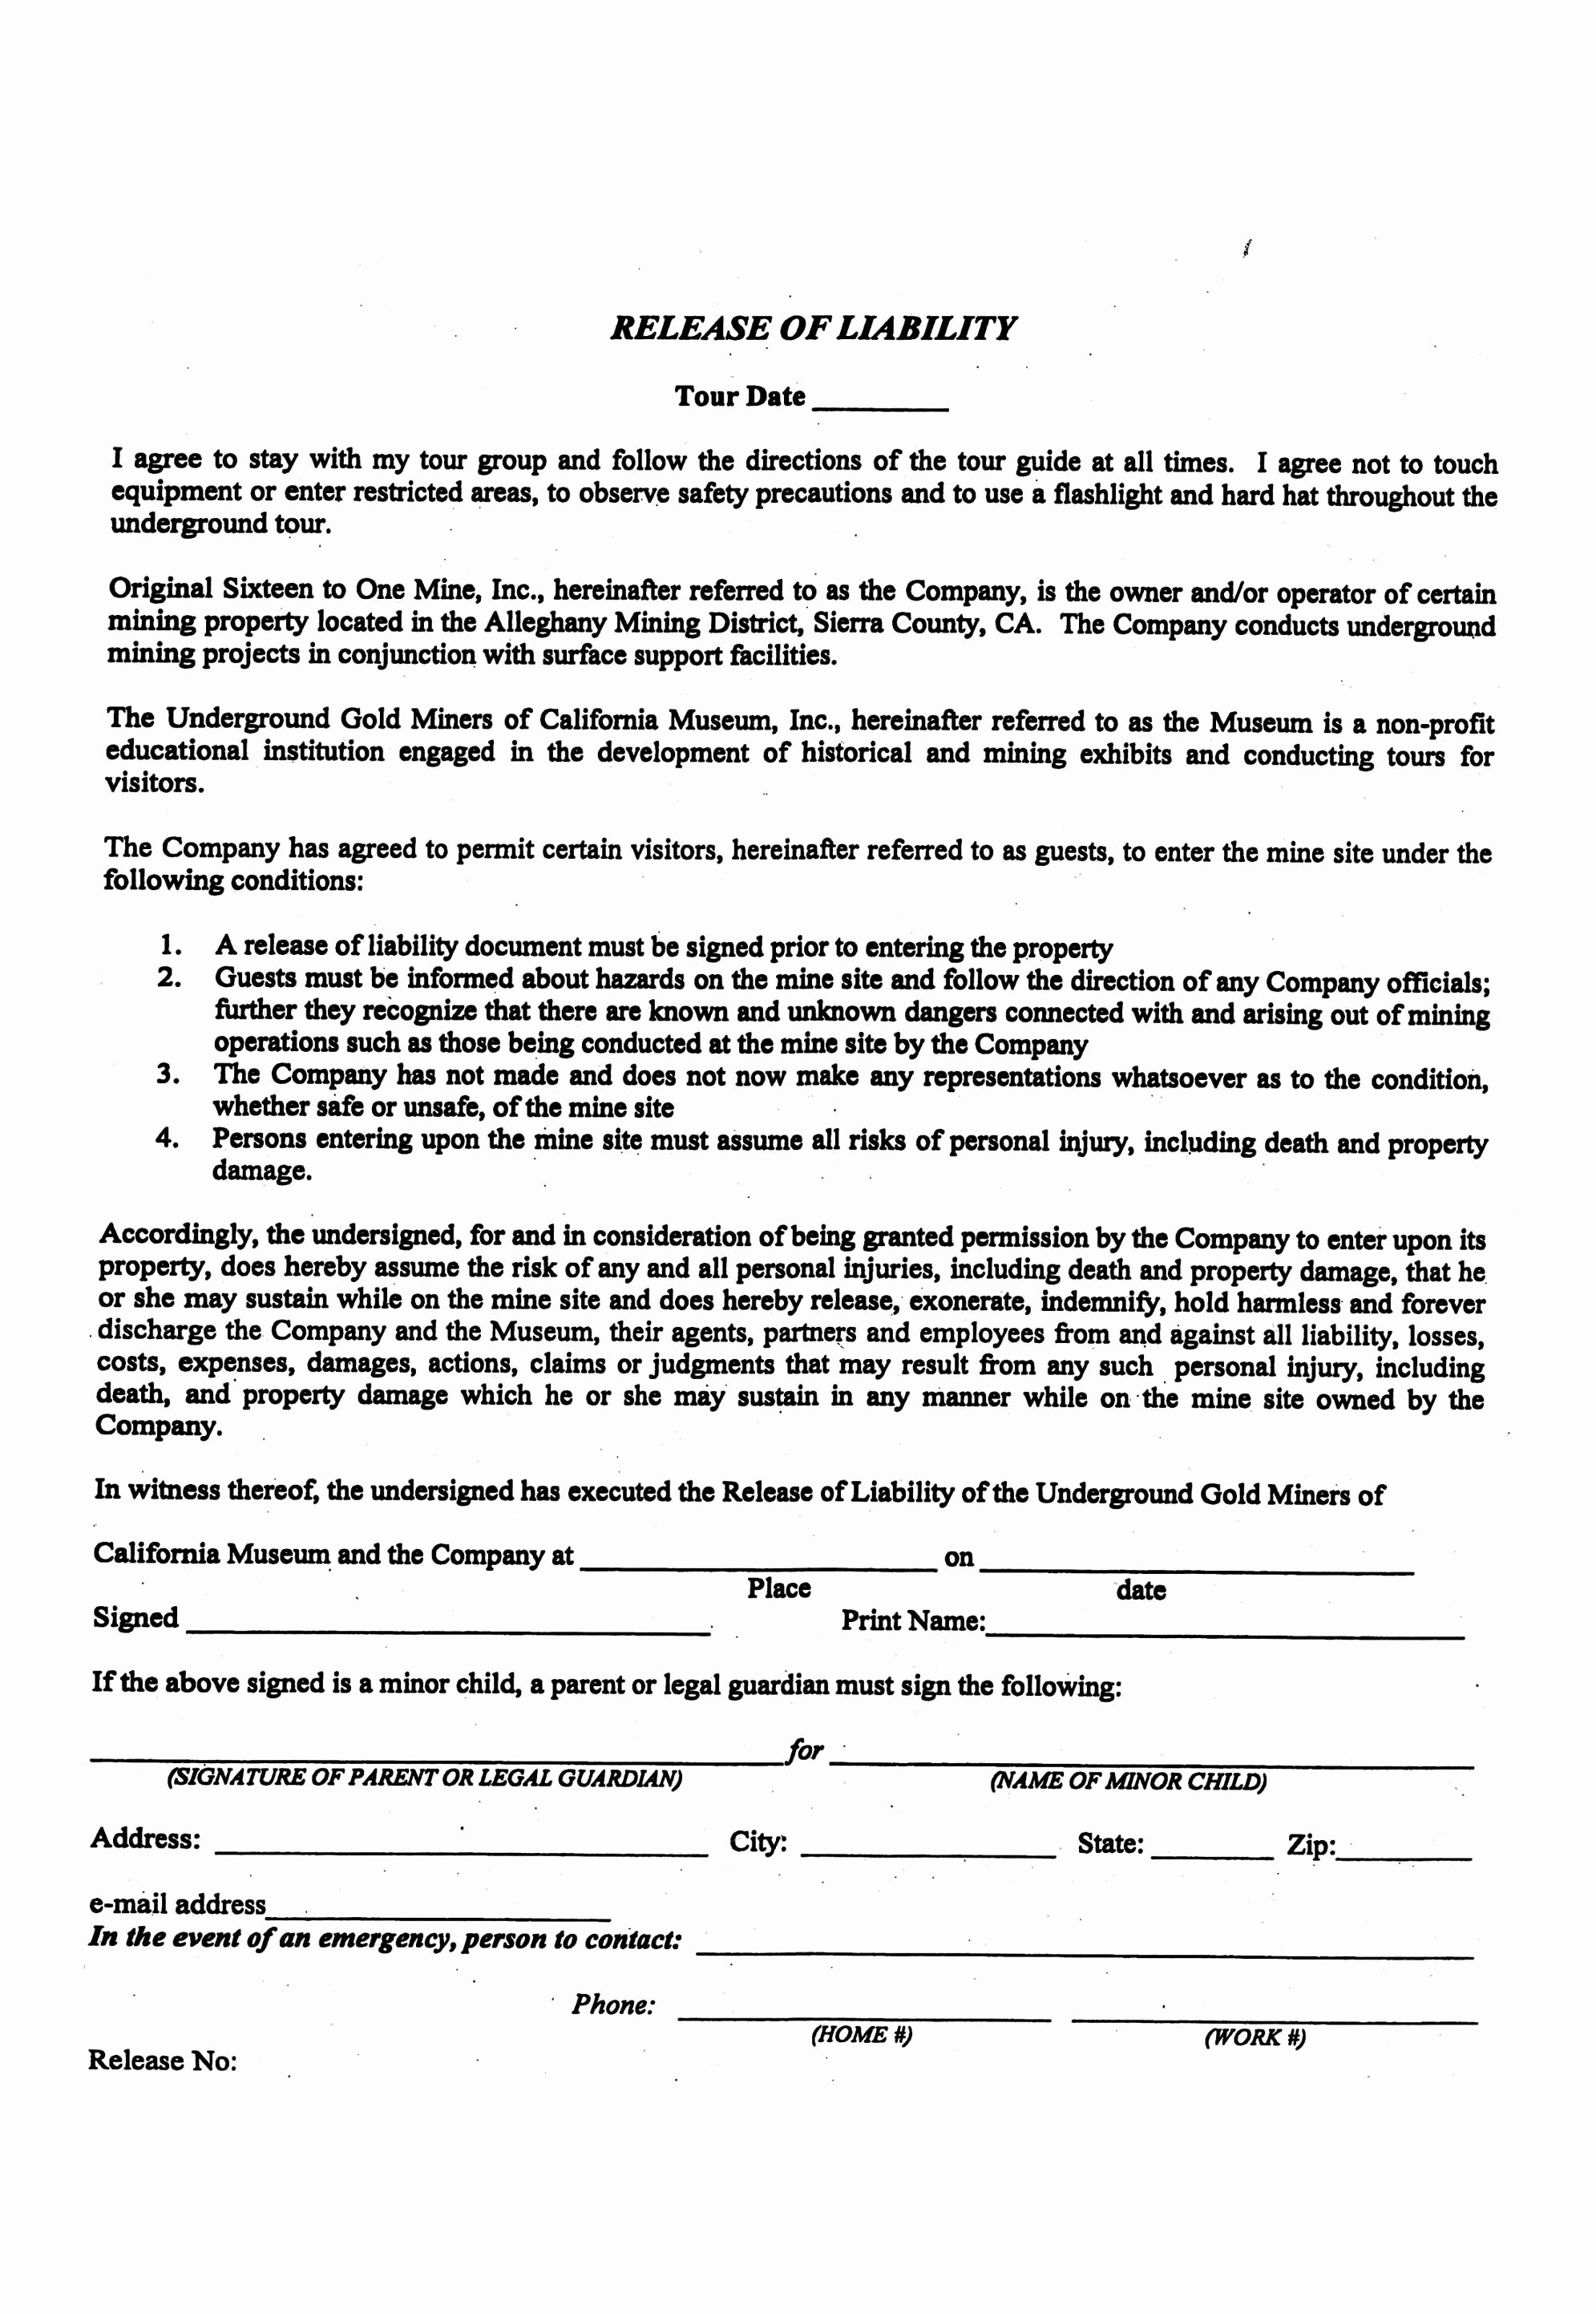 Release Of Liability Template Free New Liability Release form Template Free Printable Documents